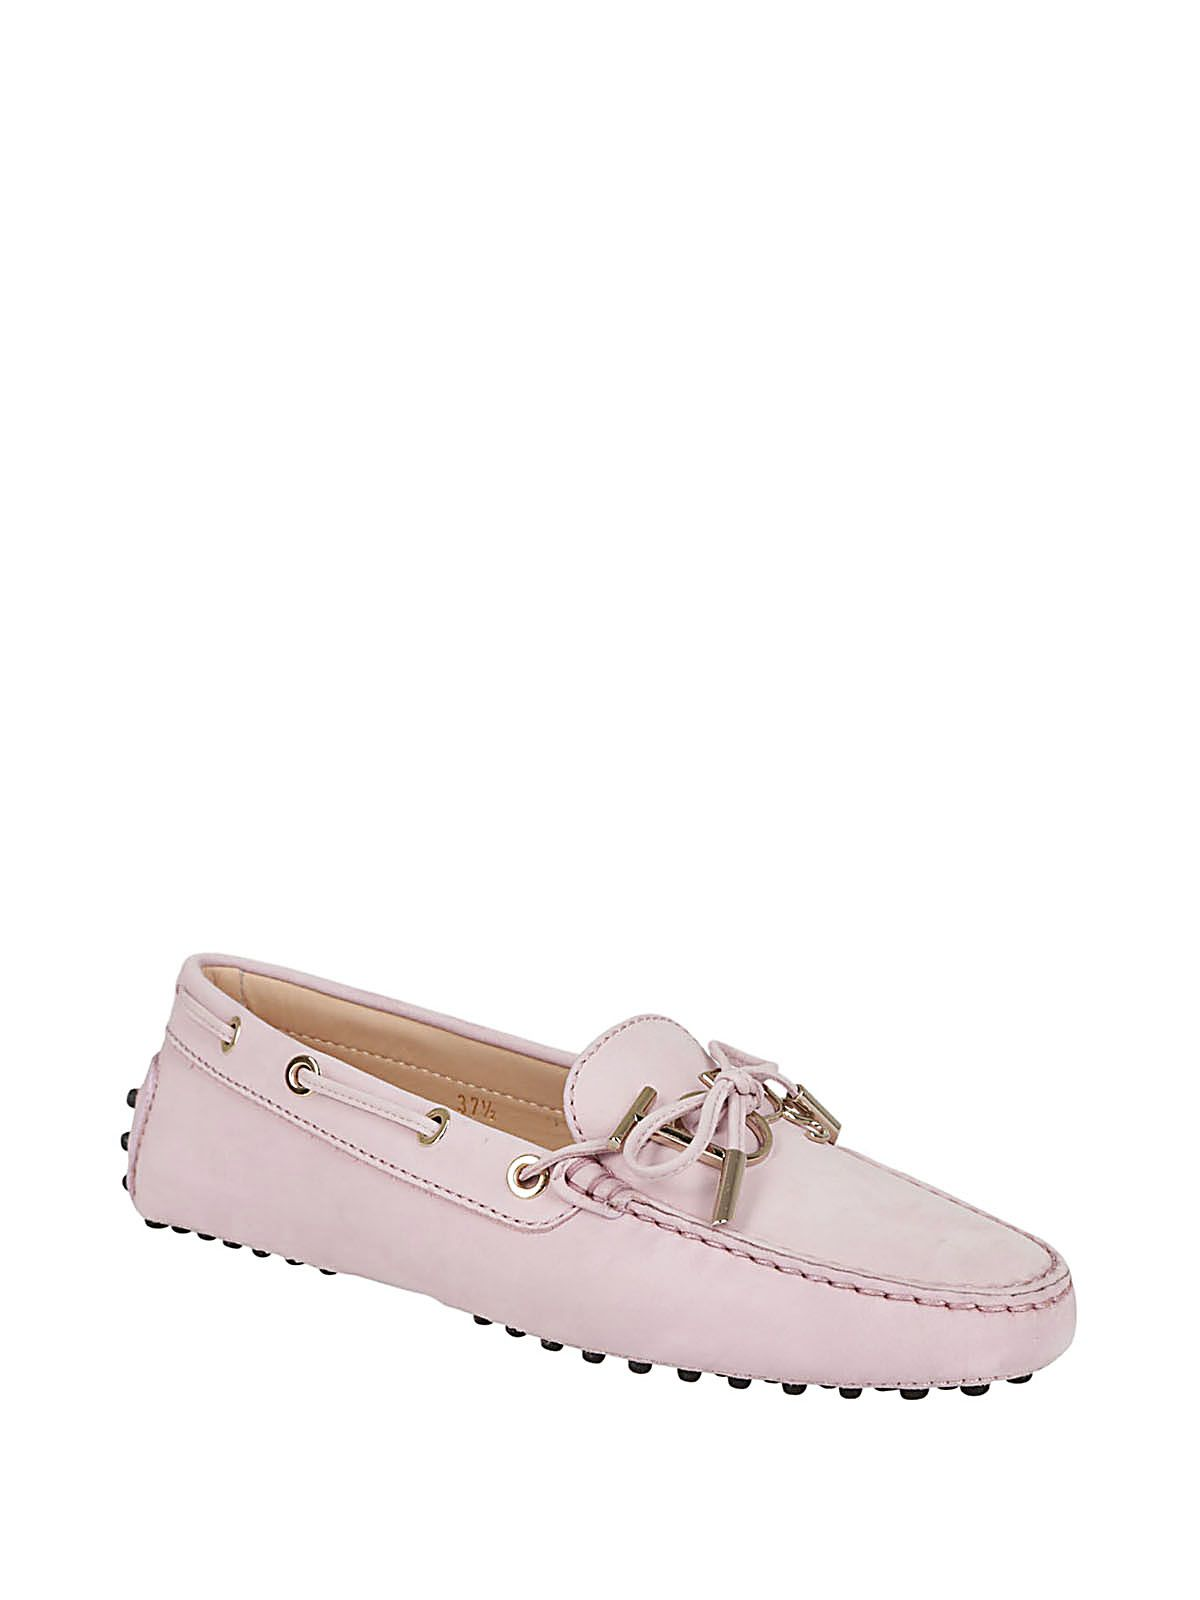 Sale Footlocker Pictures Tod's Bowtie Loafers Marketable For Sale Best Wholesale Discount Top Quality XoIHb3M2